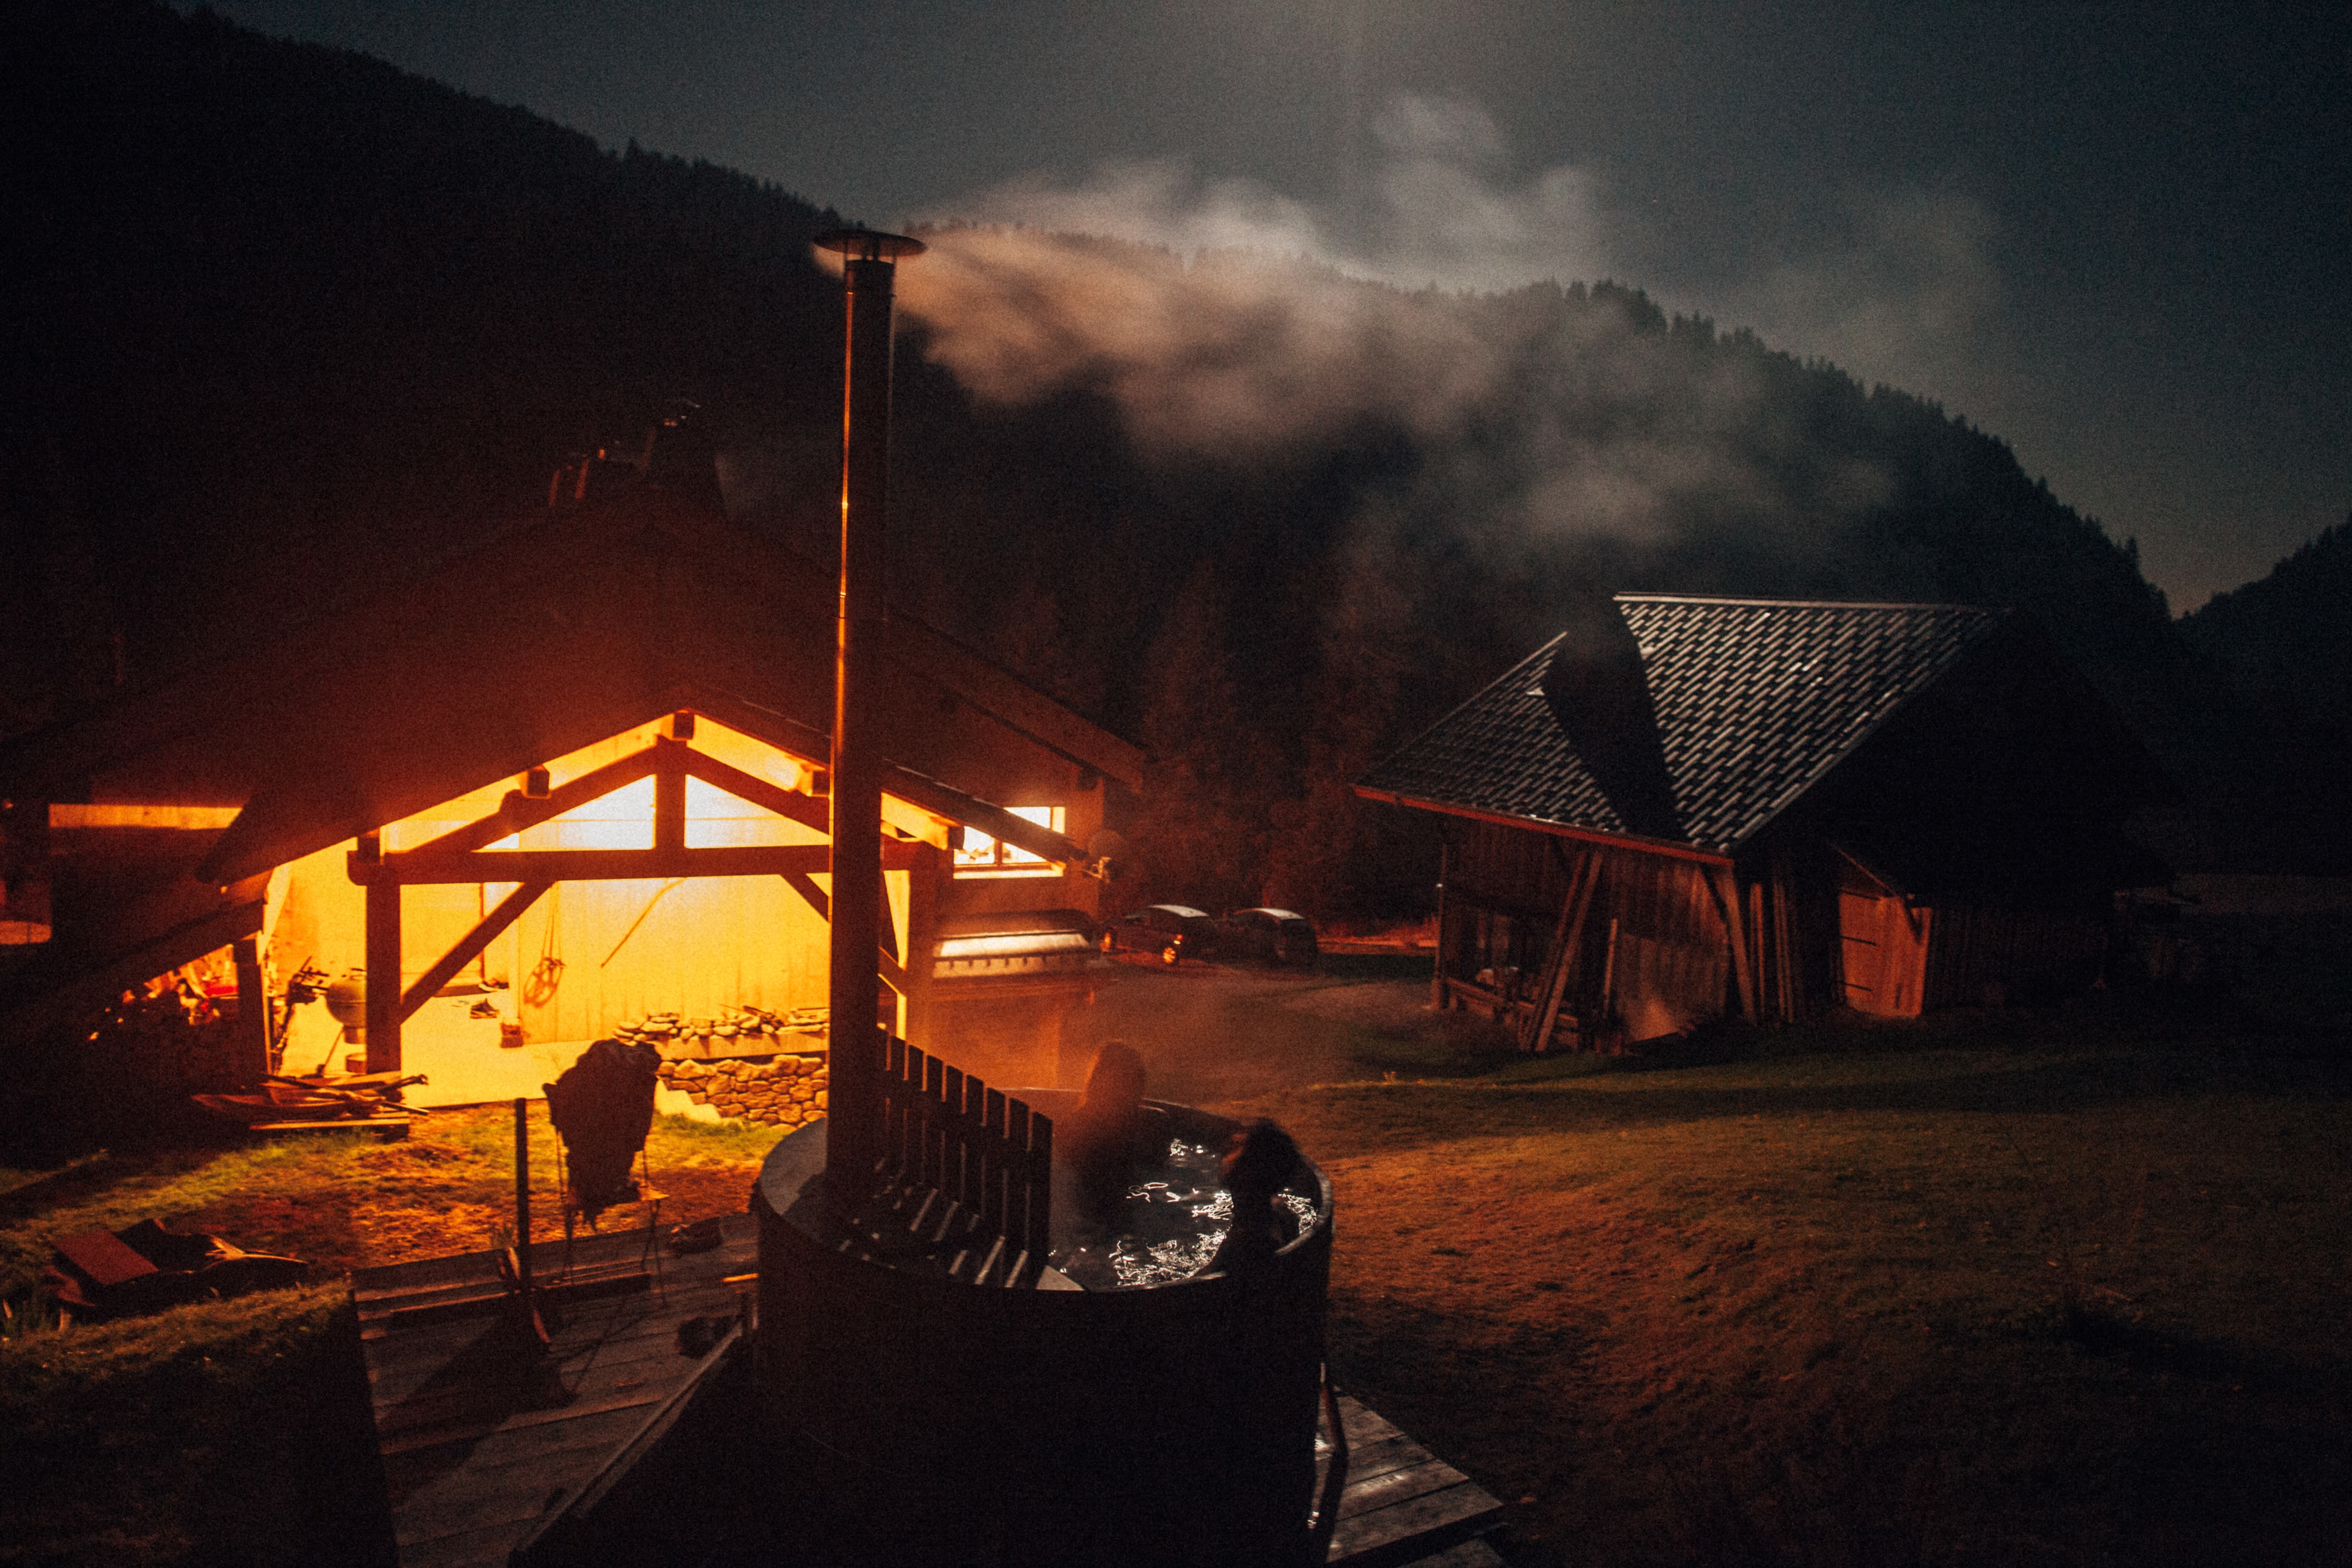 person on sauna bath during nighttime